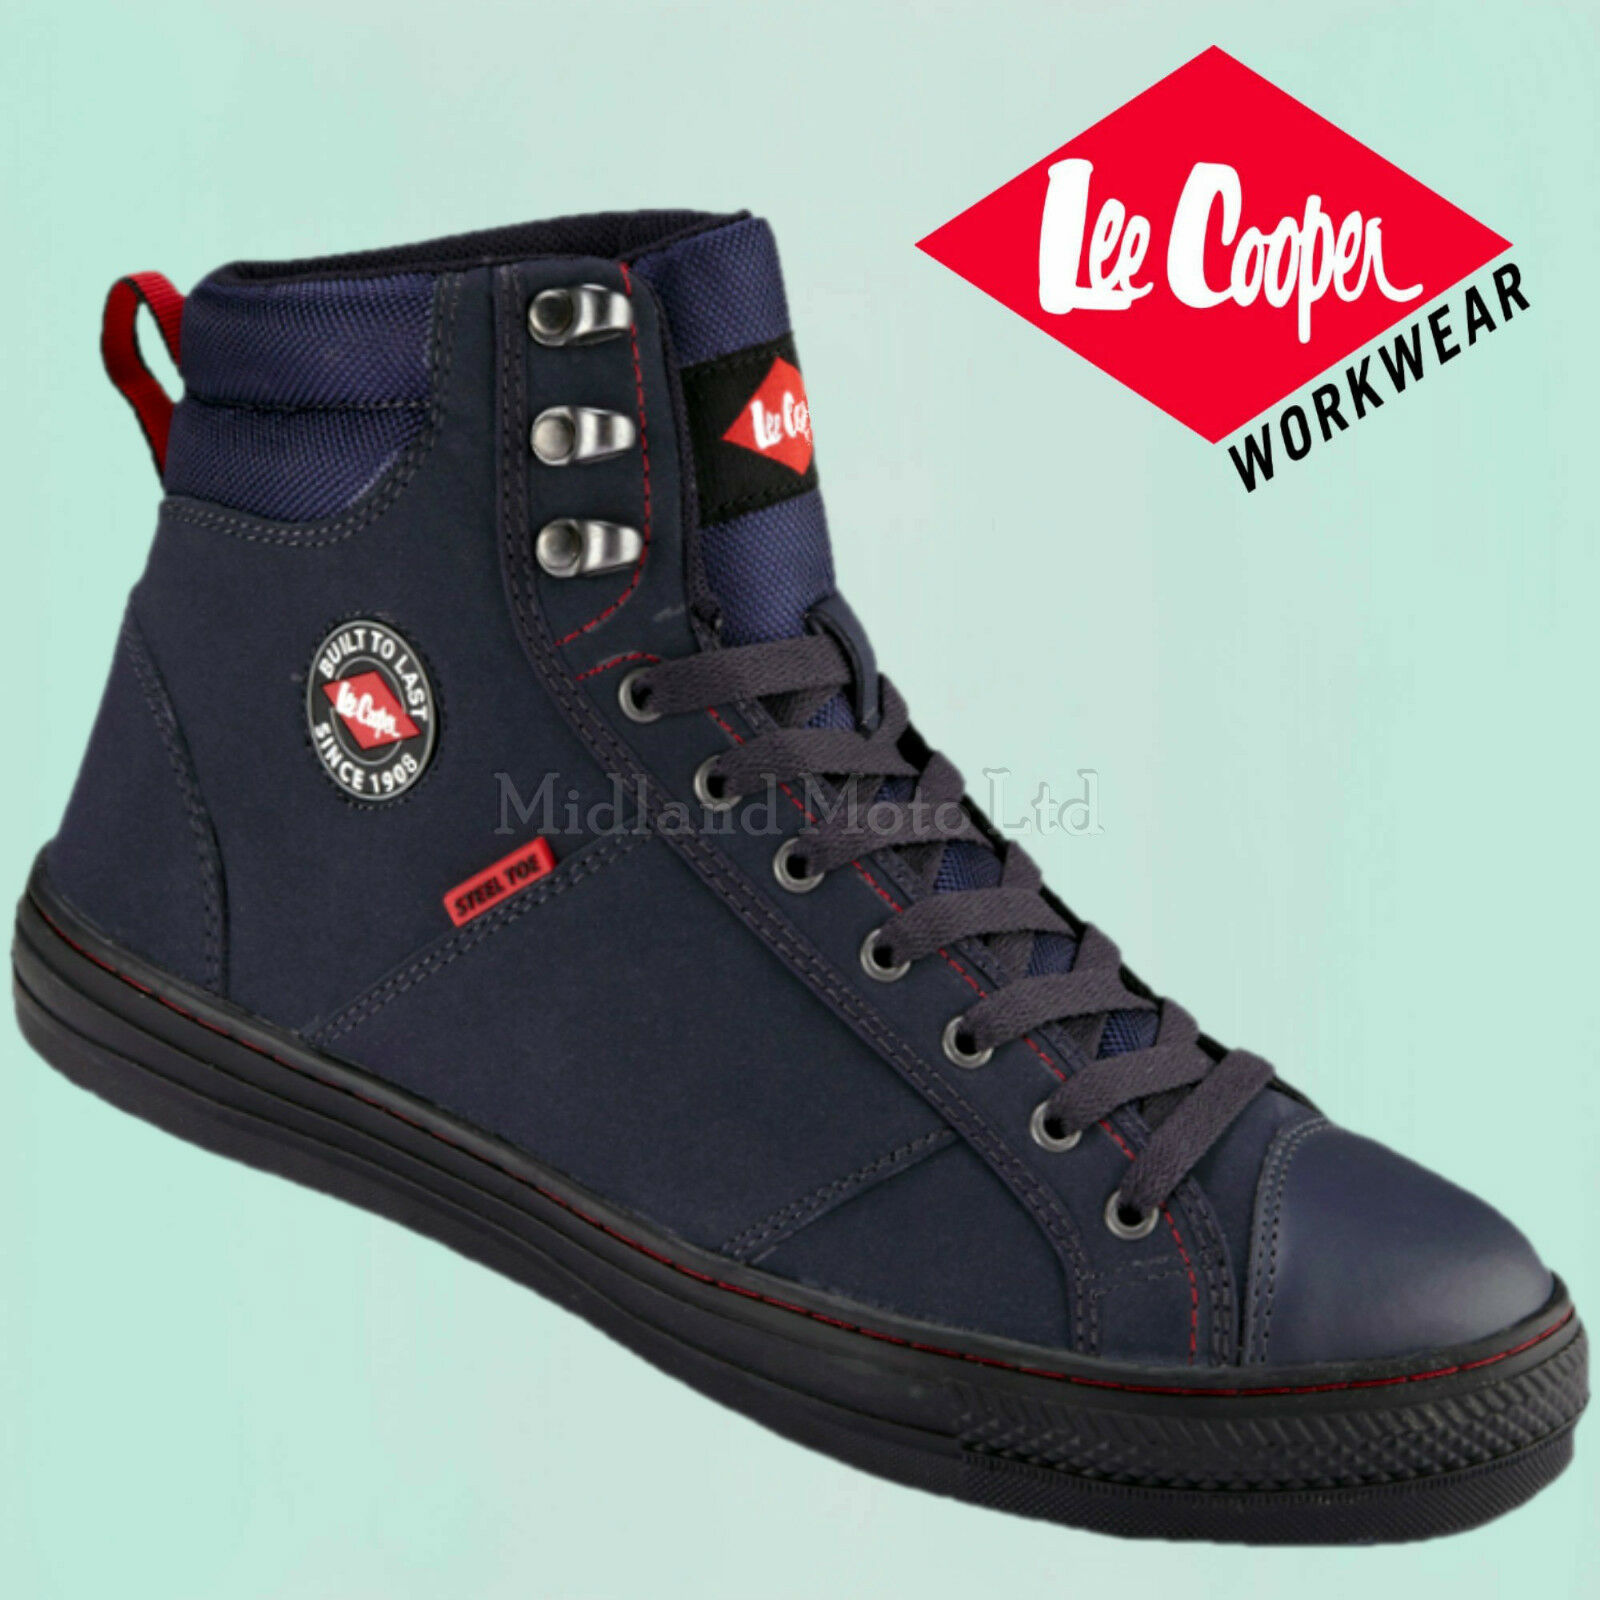 Lee Cooper Steel Toe Cap Navy bluee Baseball Style Safety Boots. Trainers shoes